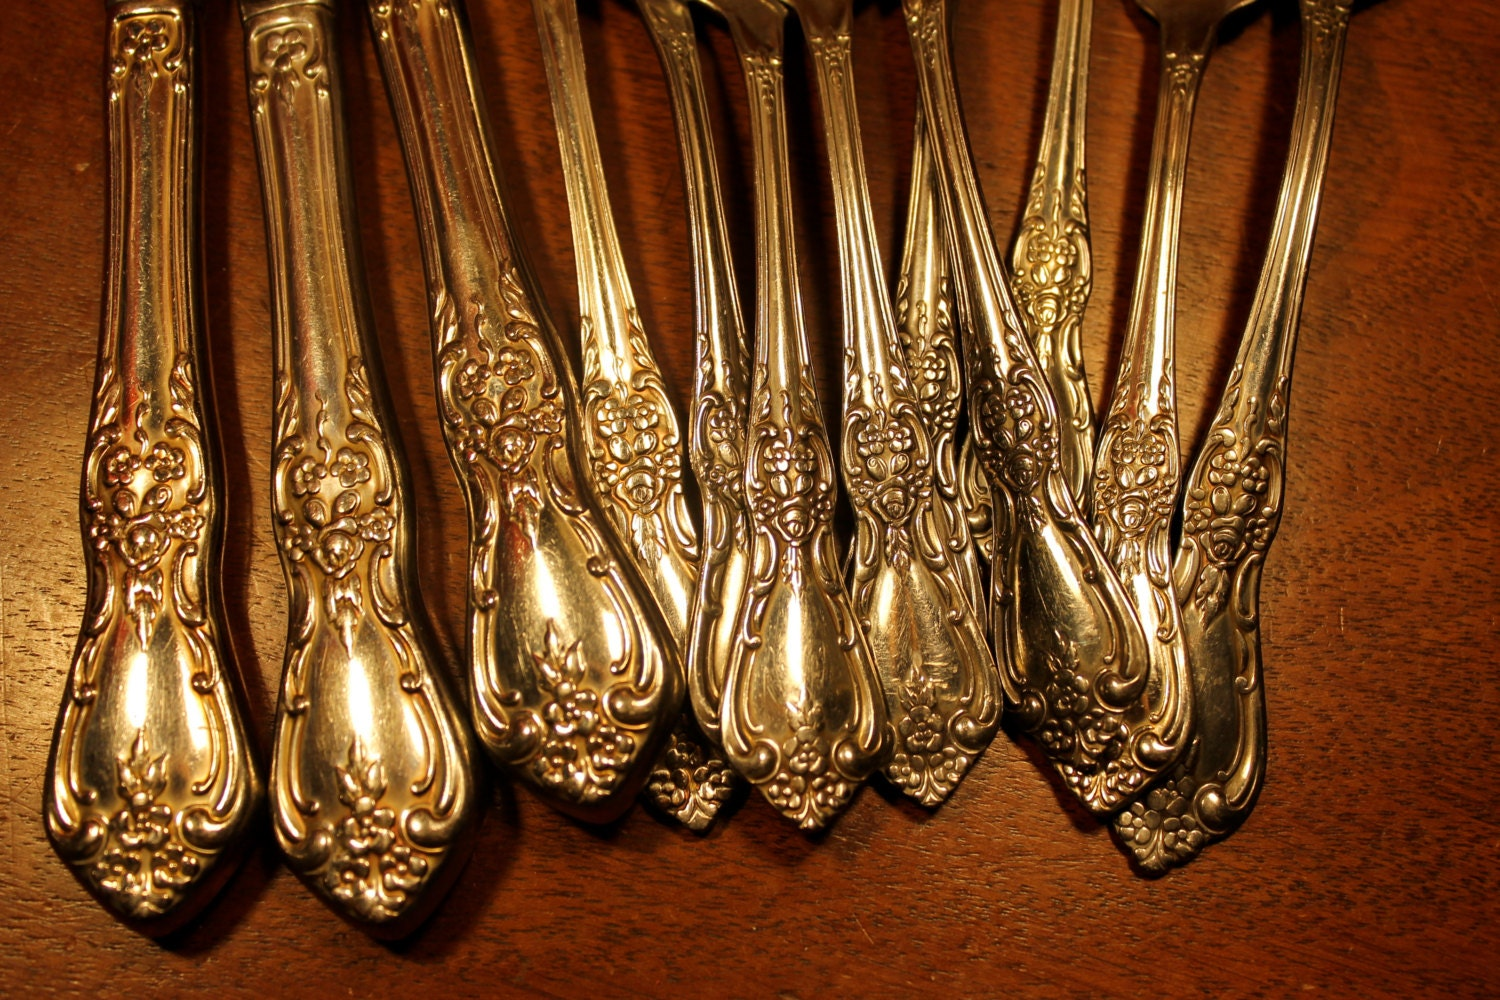 Vintage Flatware From Oneida Distinction Deluxe In Kennett